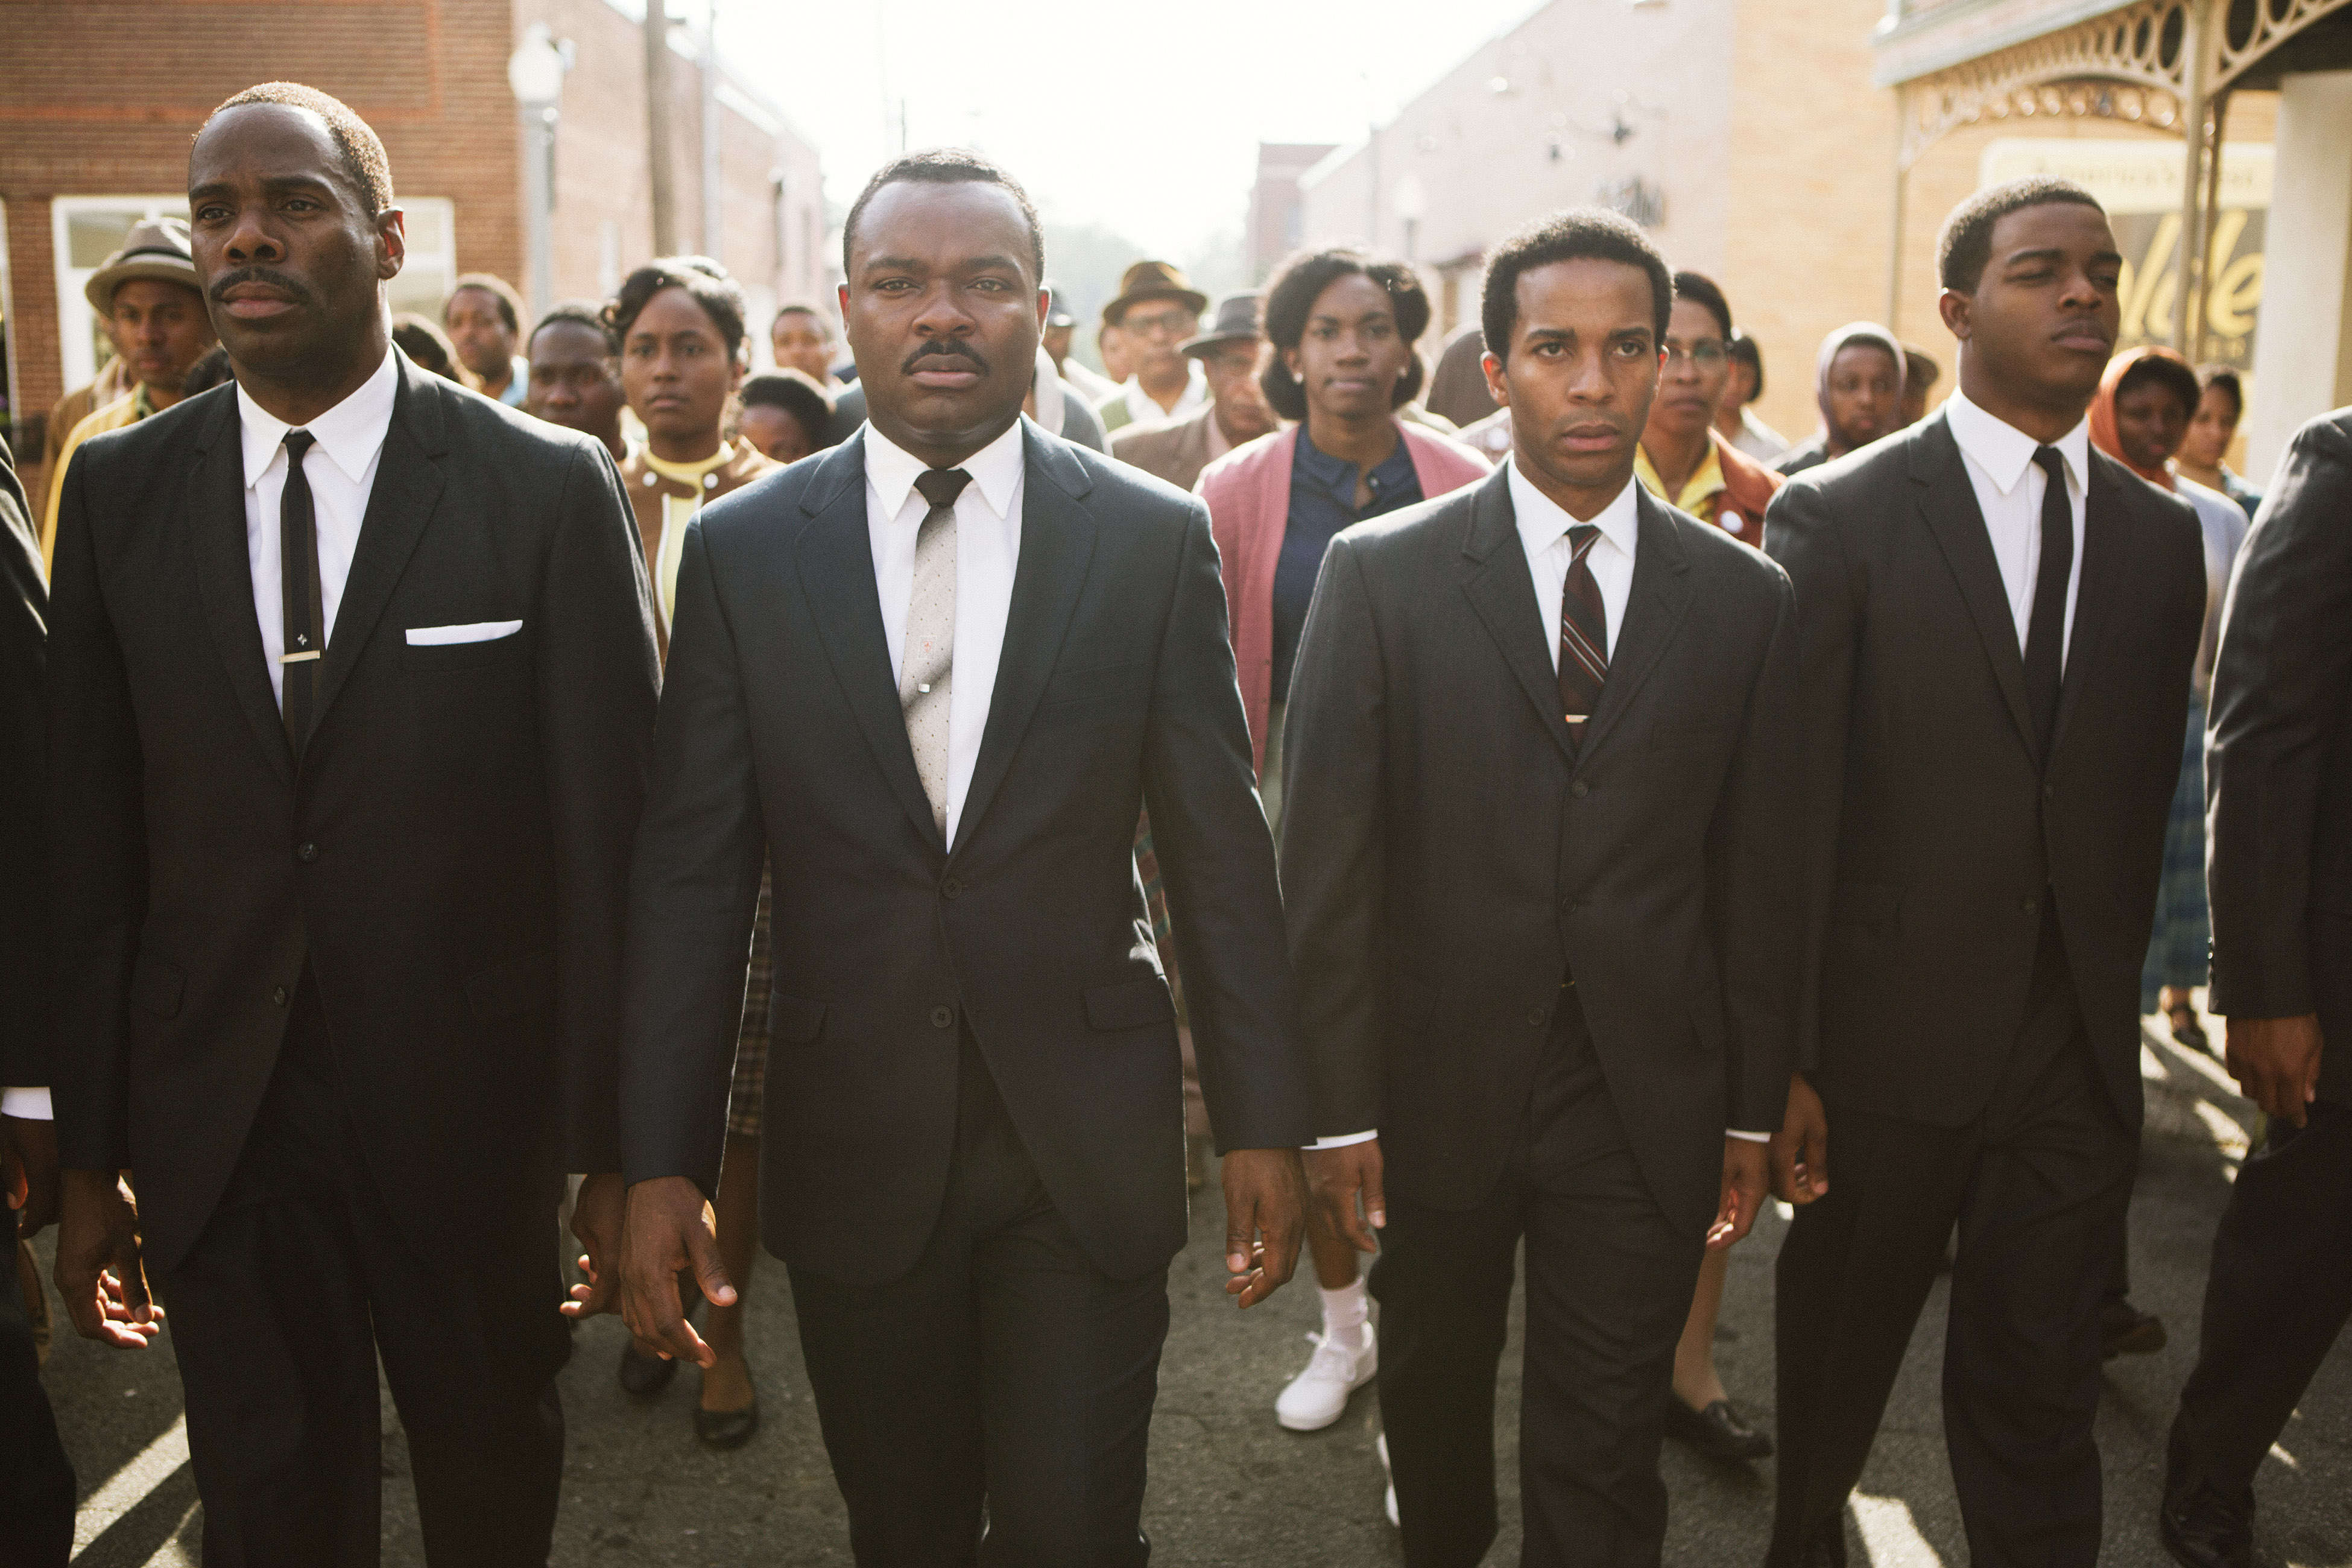 David Oyelowo (center), as Martin Luther King Jr., in Selma.